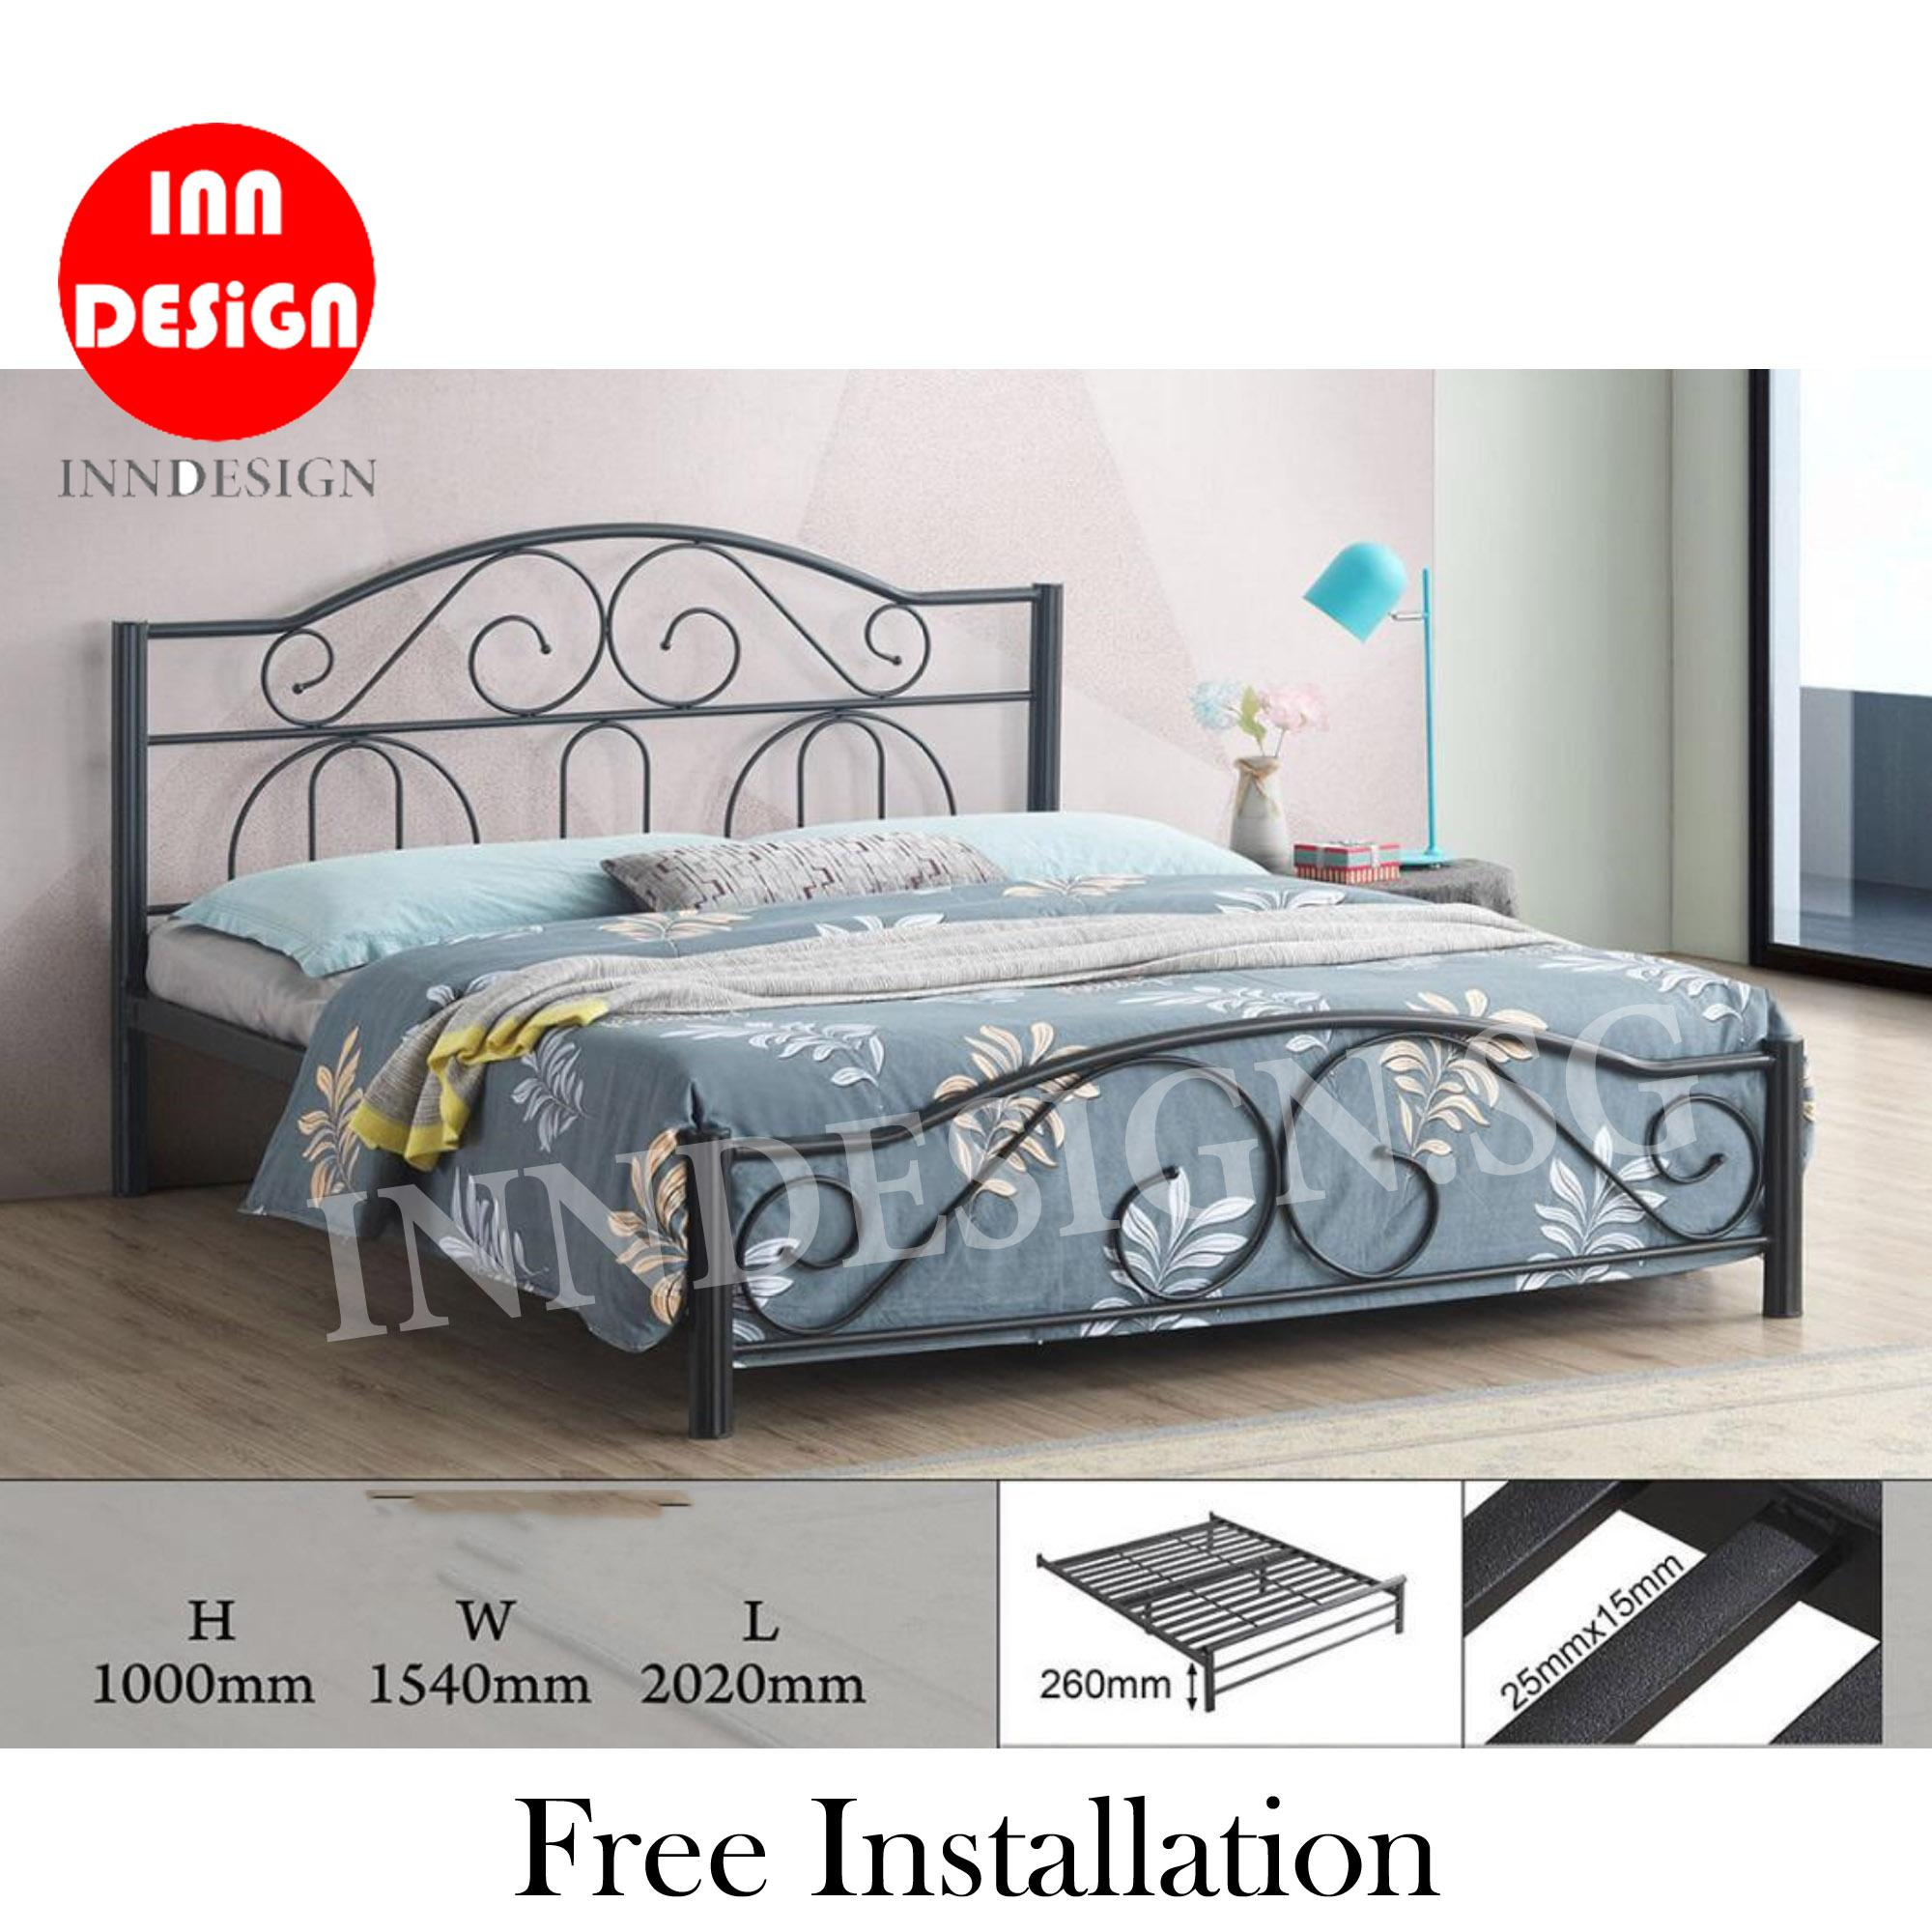 [NEW ARRIVAL] [6 Months Warranty] Quanto Queen Heavy Duty Metal Bedframe / Bed / Bed frame (Free Delivery and Installation)